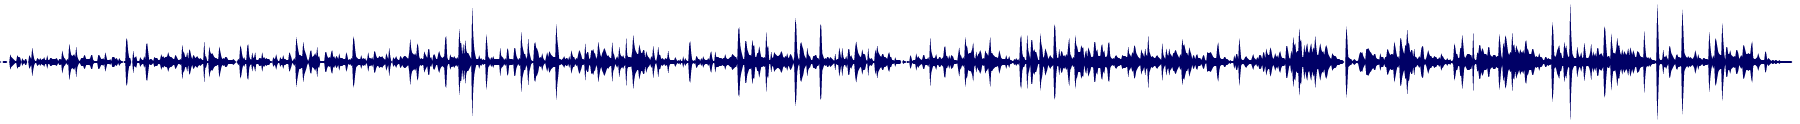 waveform of track #74286